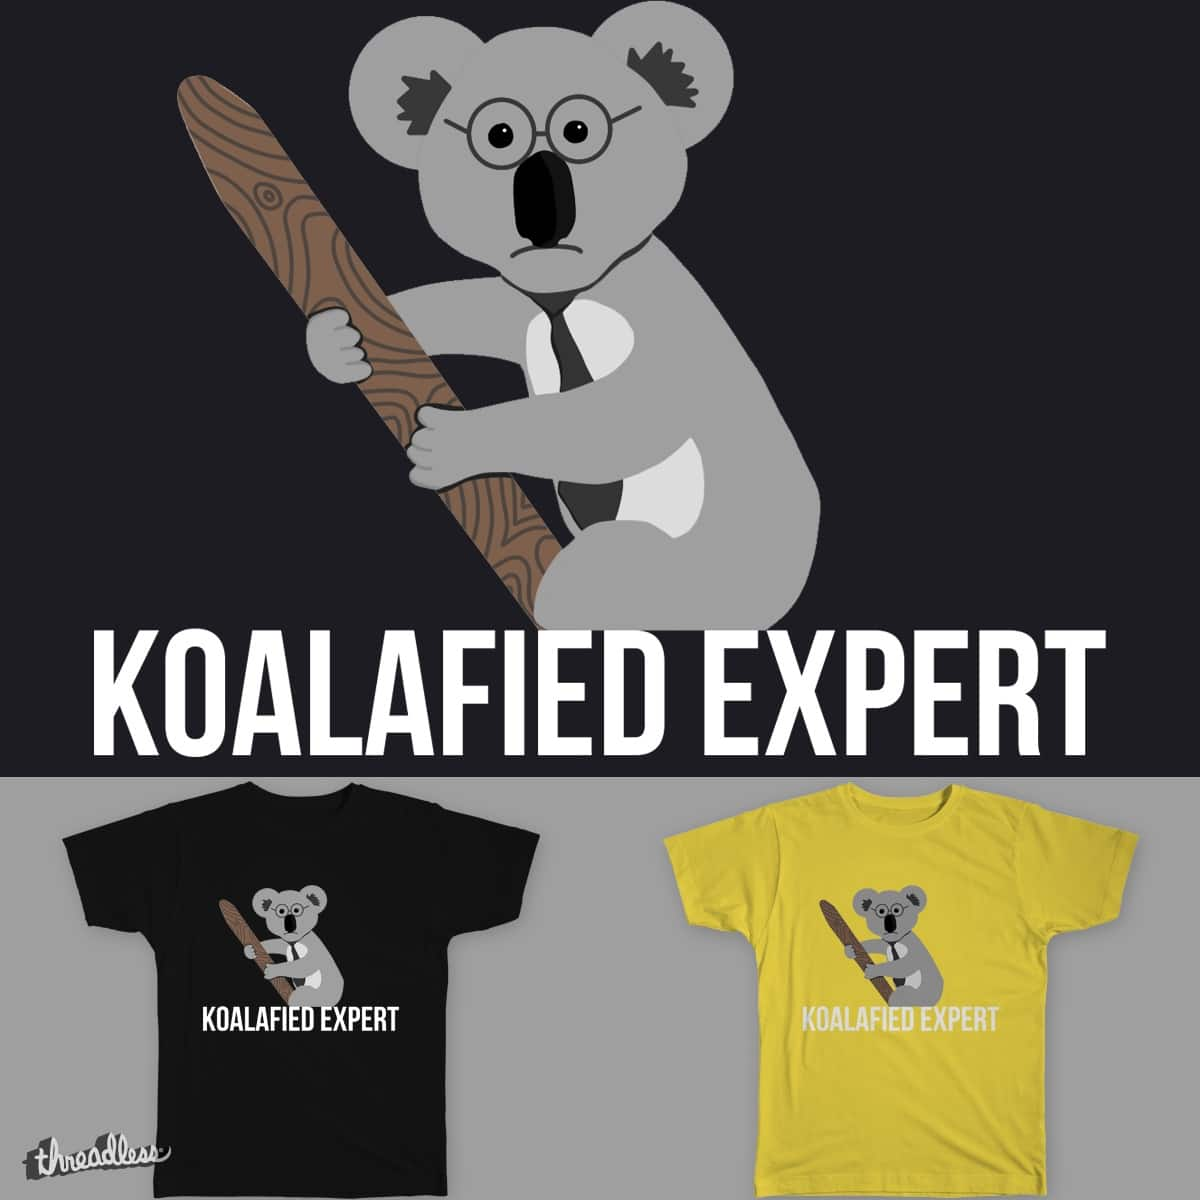 Koalafied Expert by blushoo on Threadless